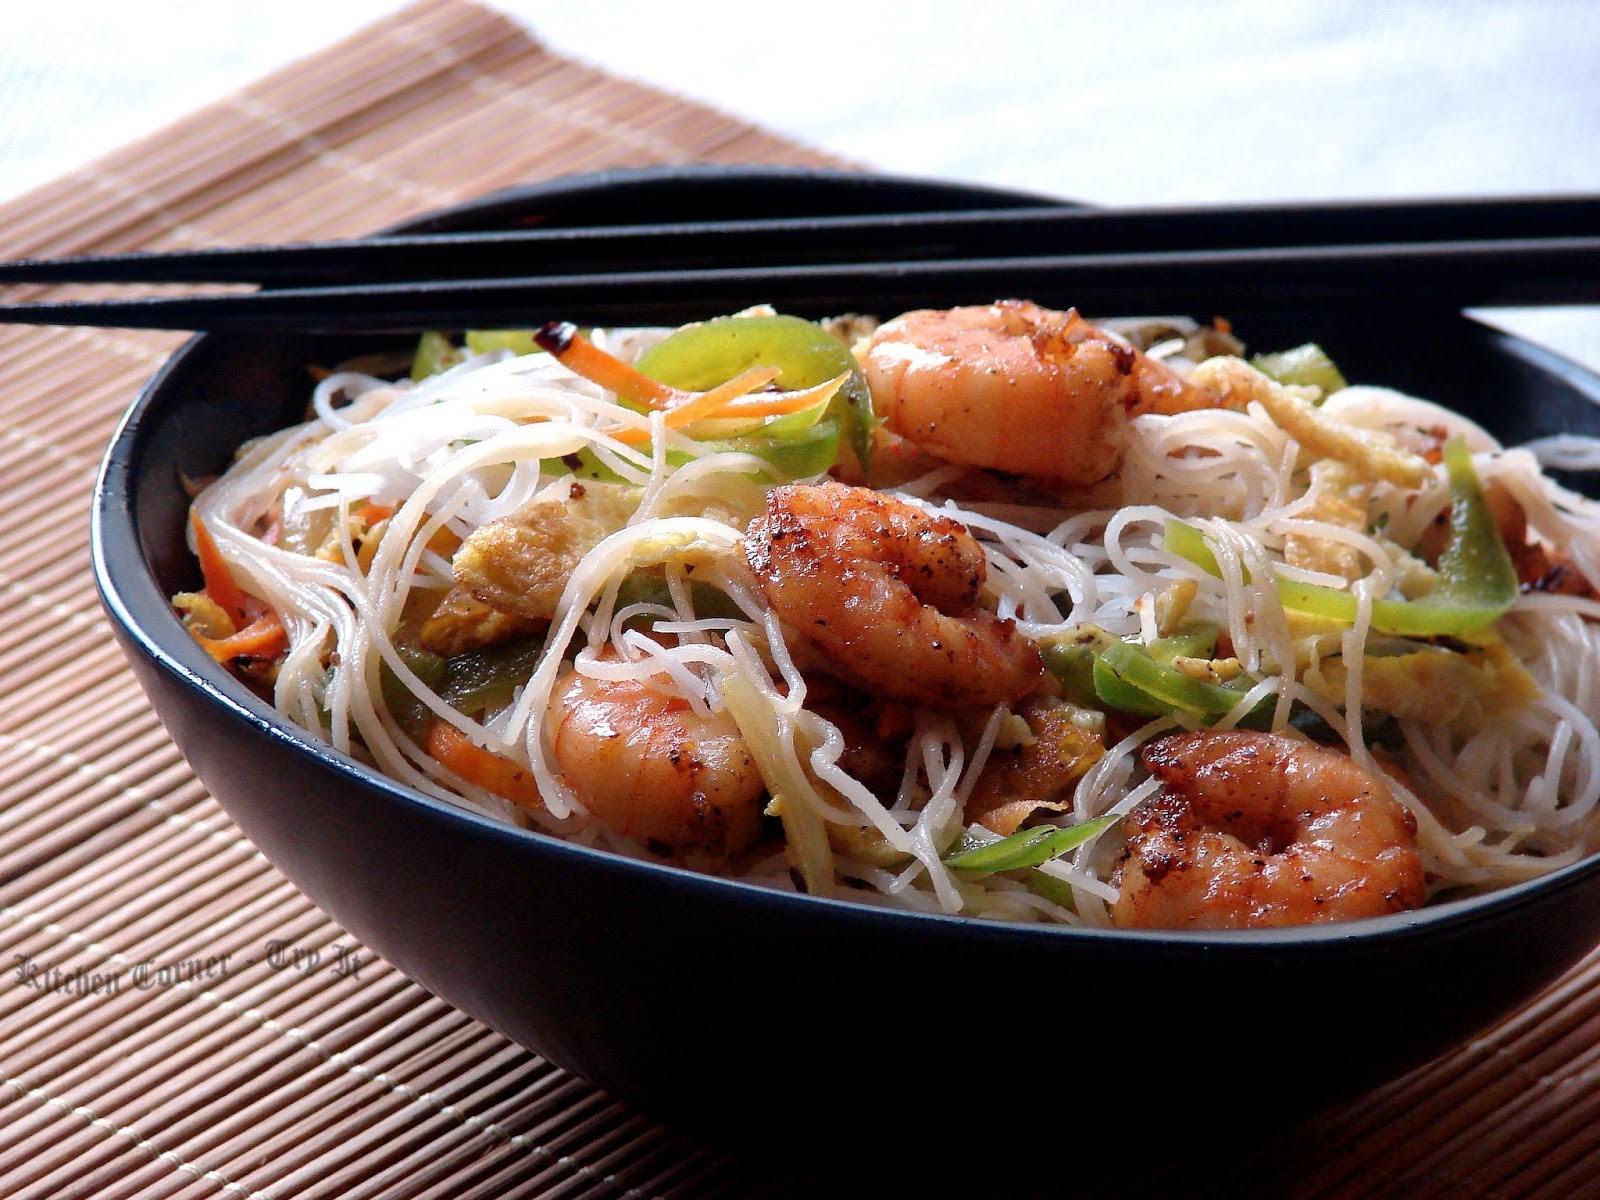 Kitchen Corner-Try It: Shrimp Vermicelli/Rice Noodles